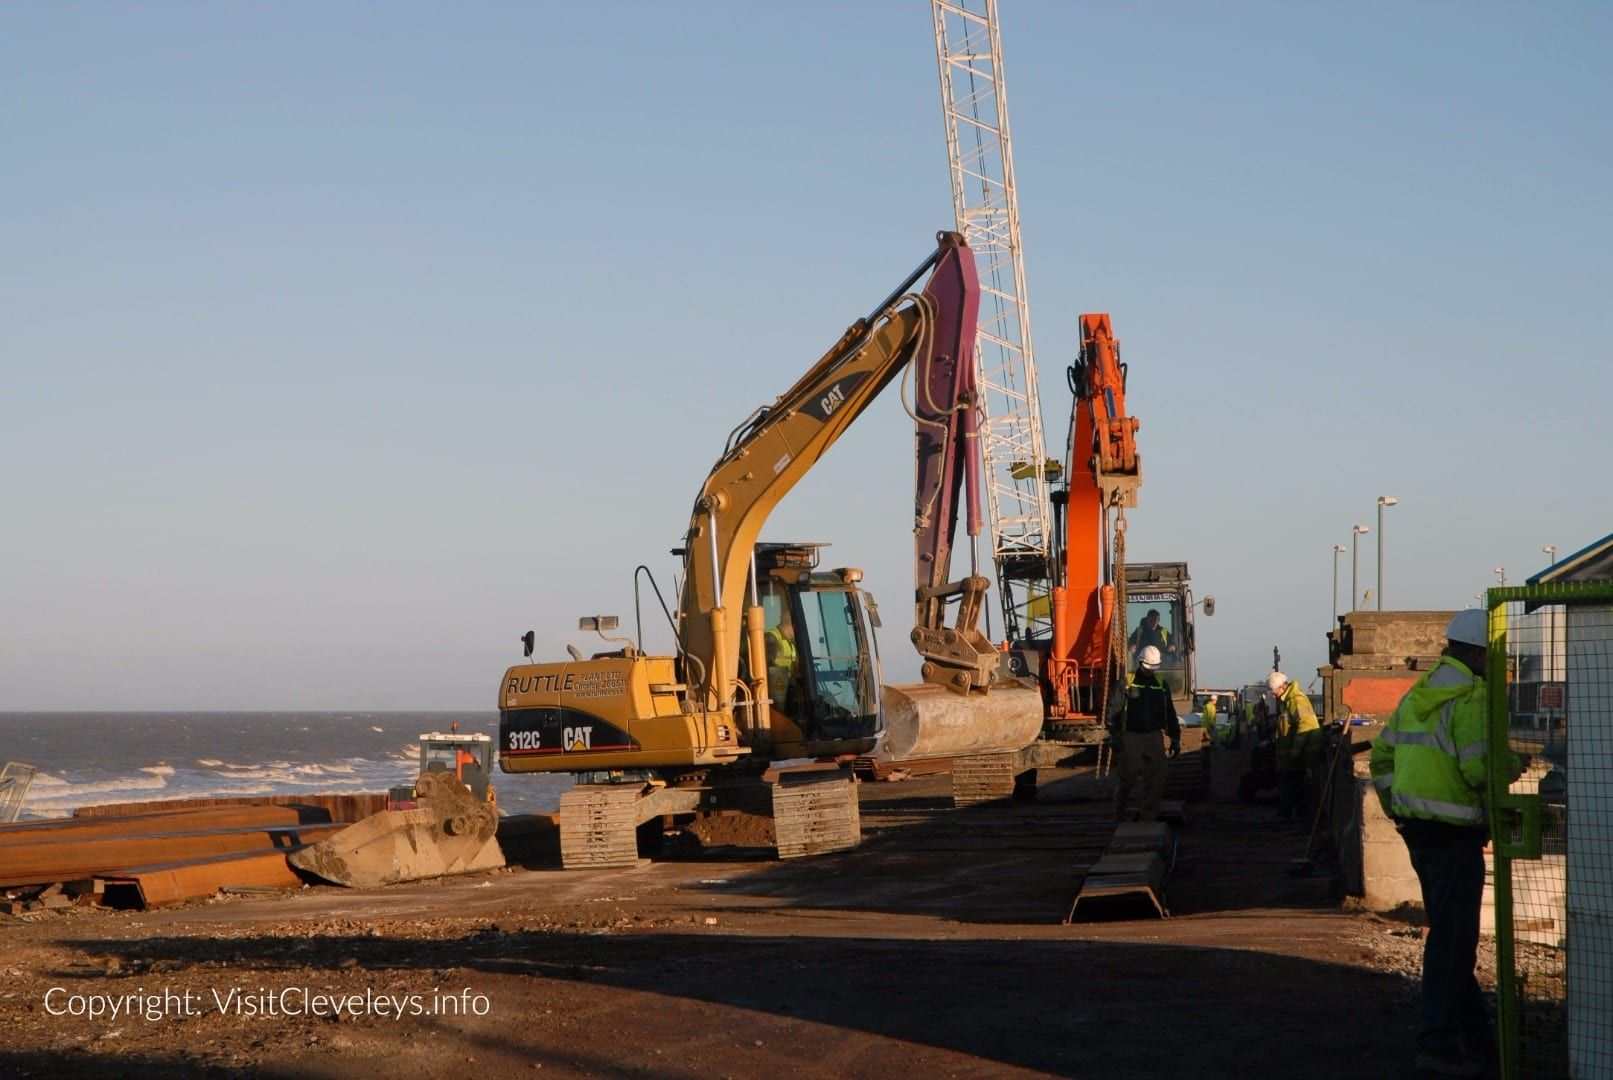 Building Cleveleys sea defences in 2007